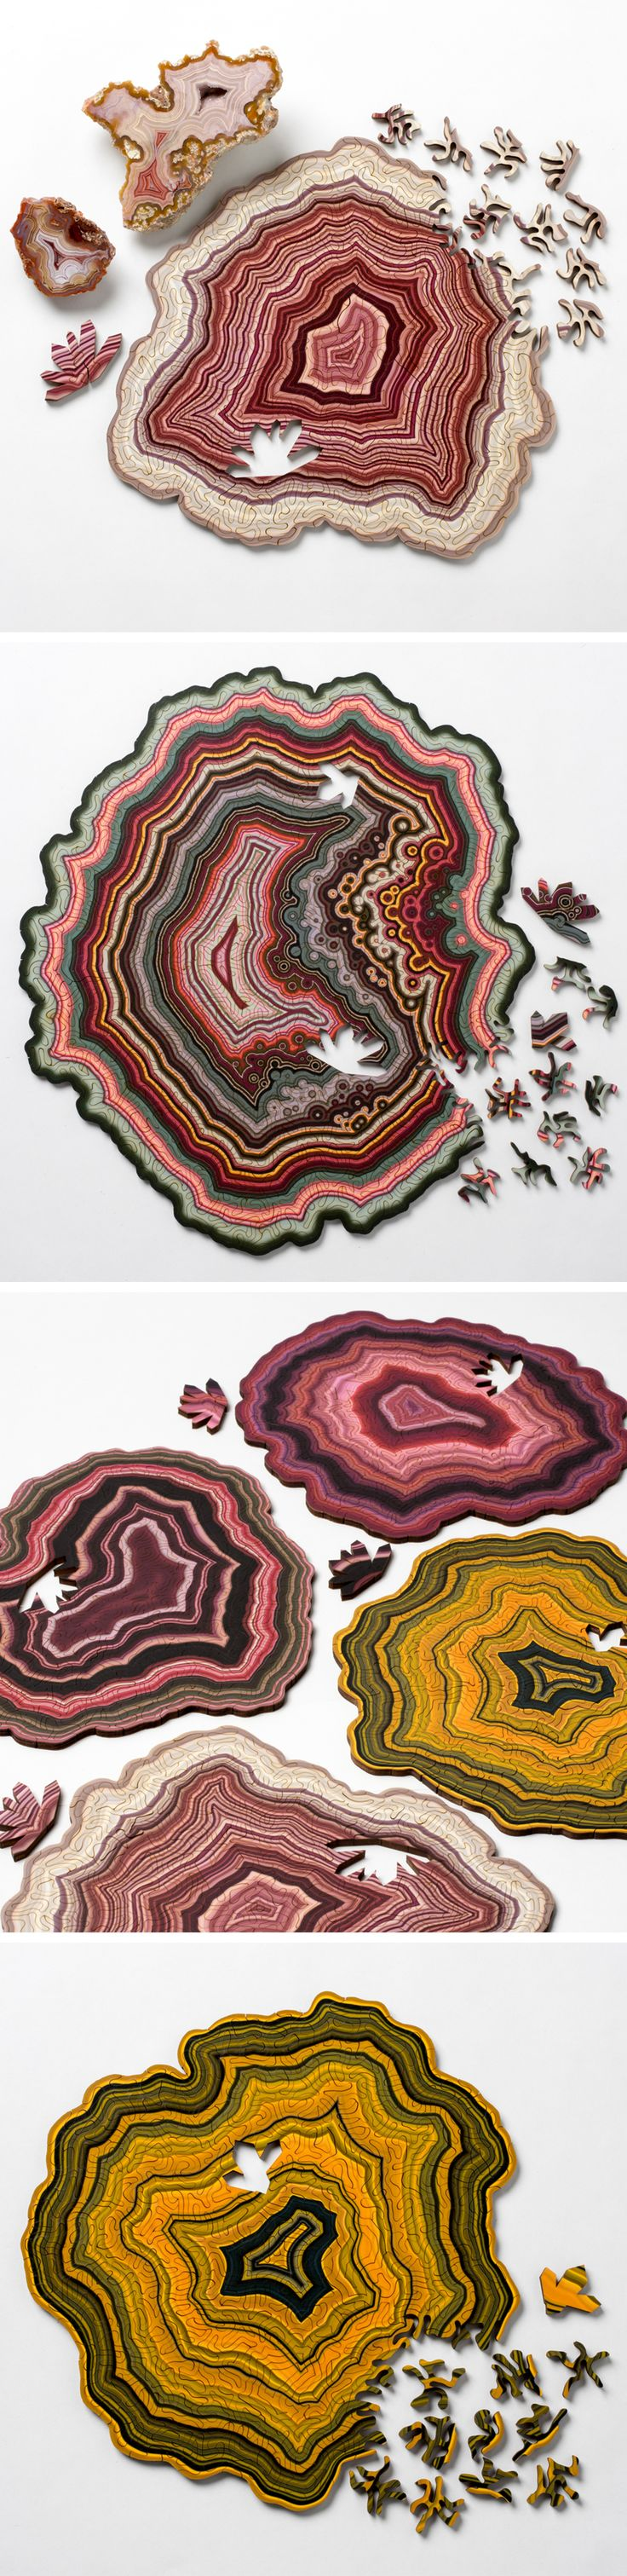 Computer-Generated Jigsaw Puzzles Based on Geological Forms